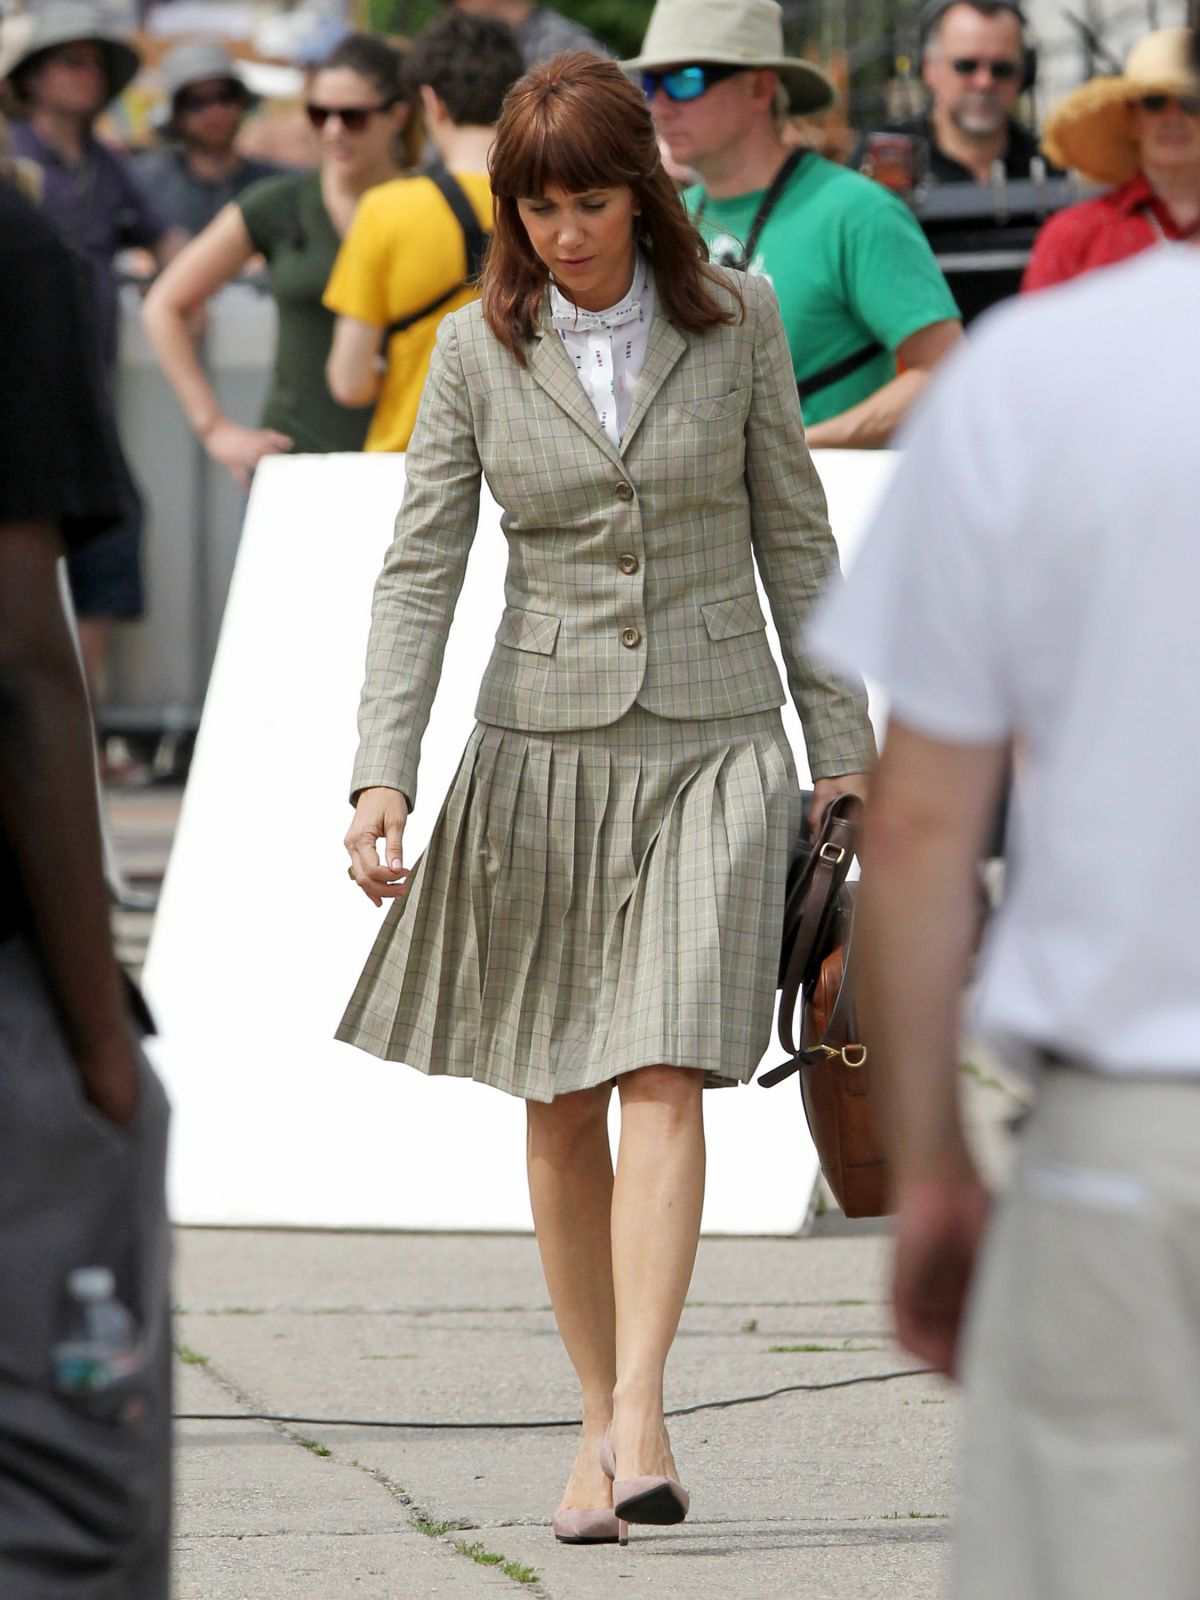 KRISTEN WIIG on the Set of Ghostbuster 3 in Boston 06/18/2015